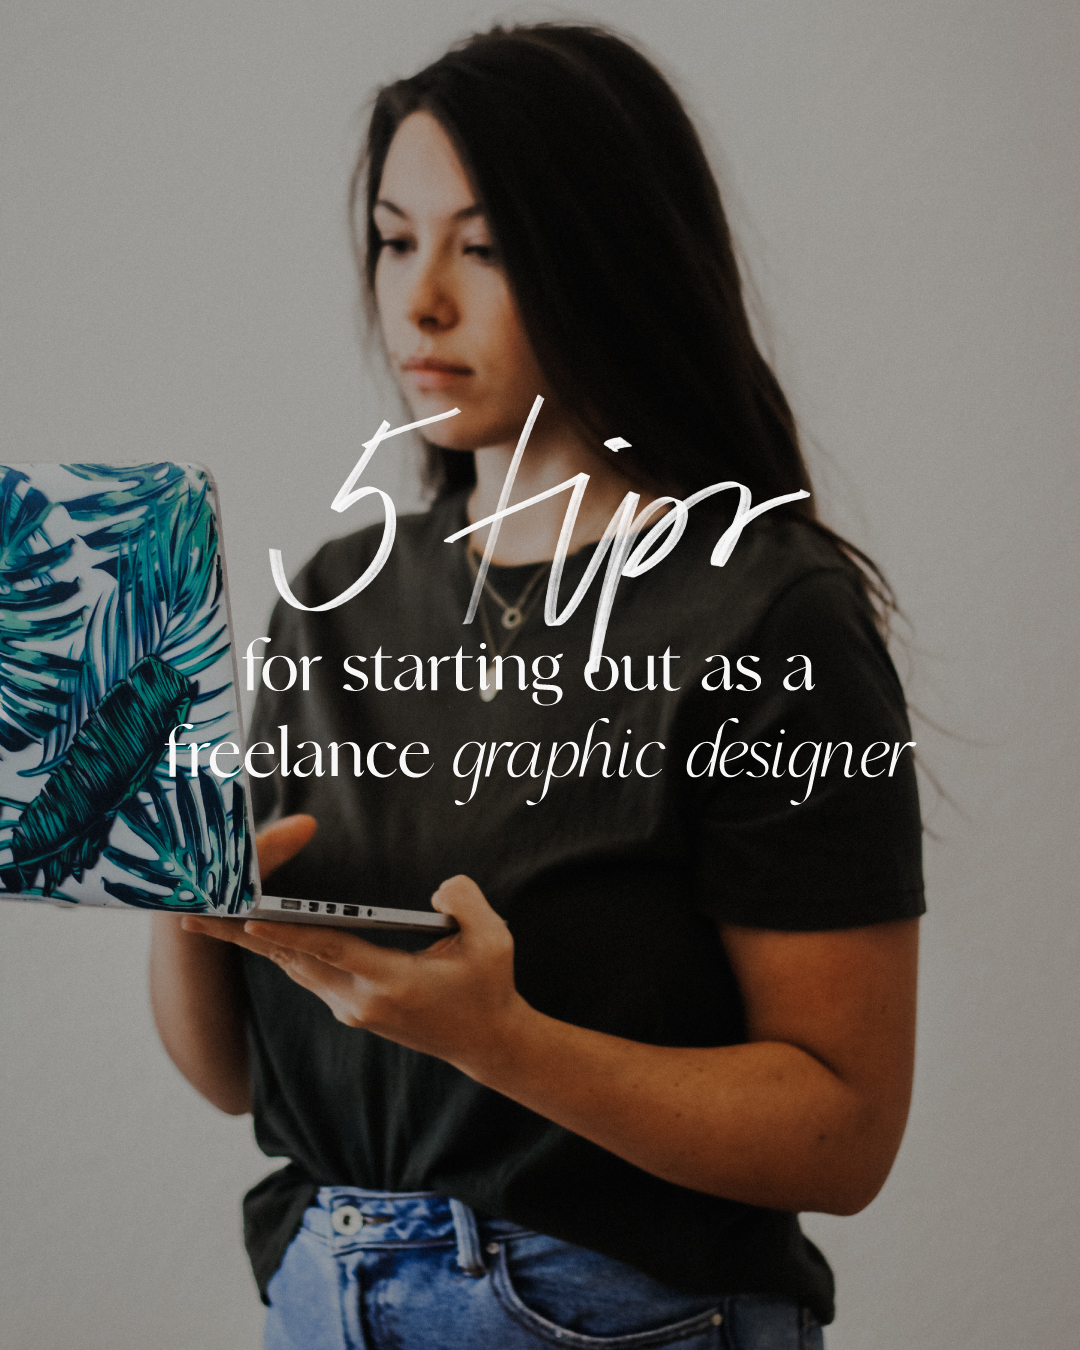 starting-out-as-graphic-designer-5-tips